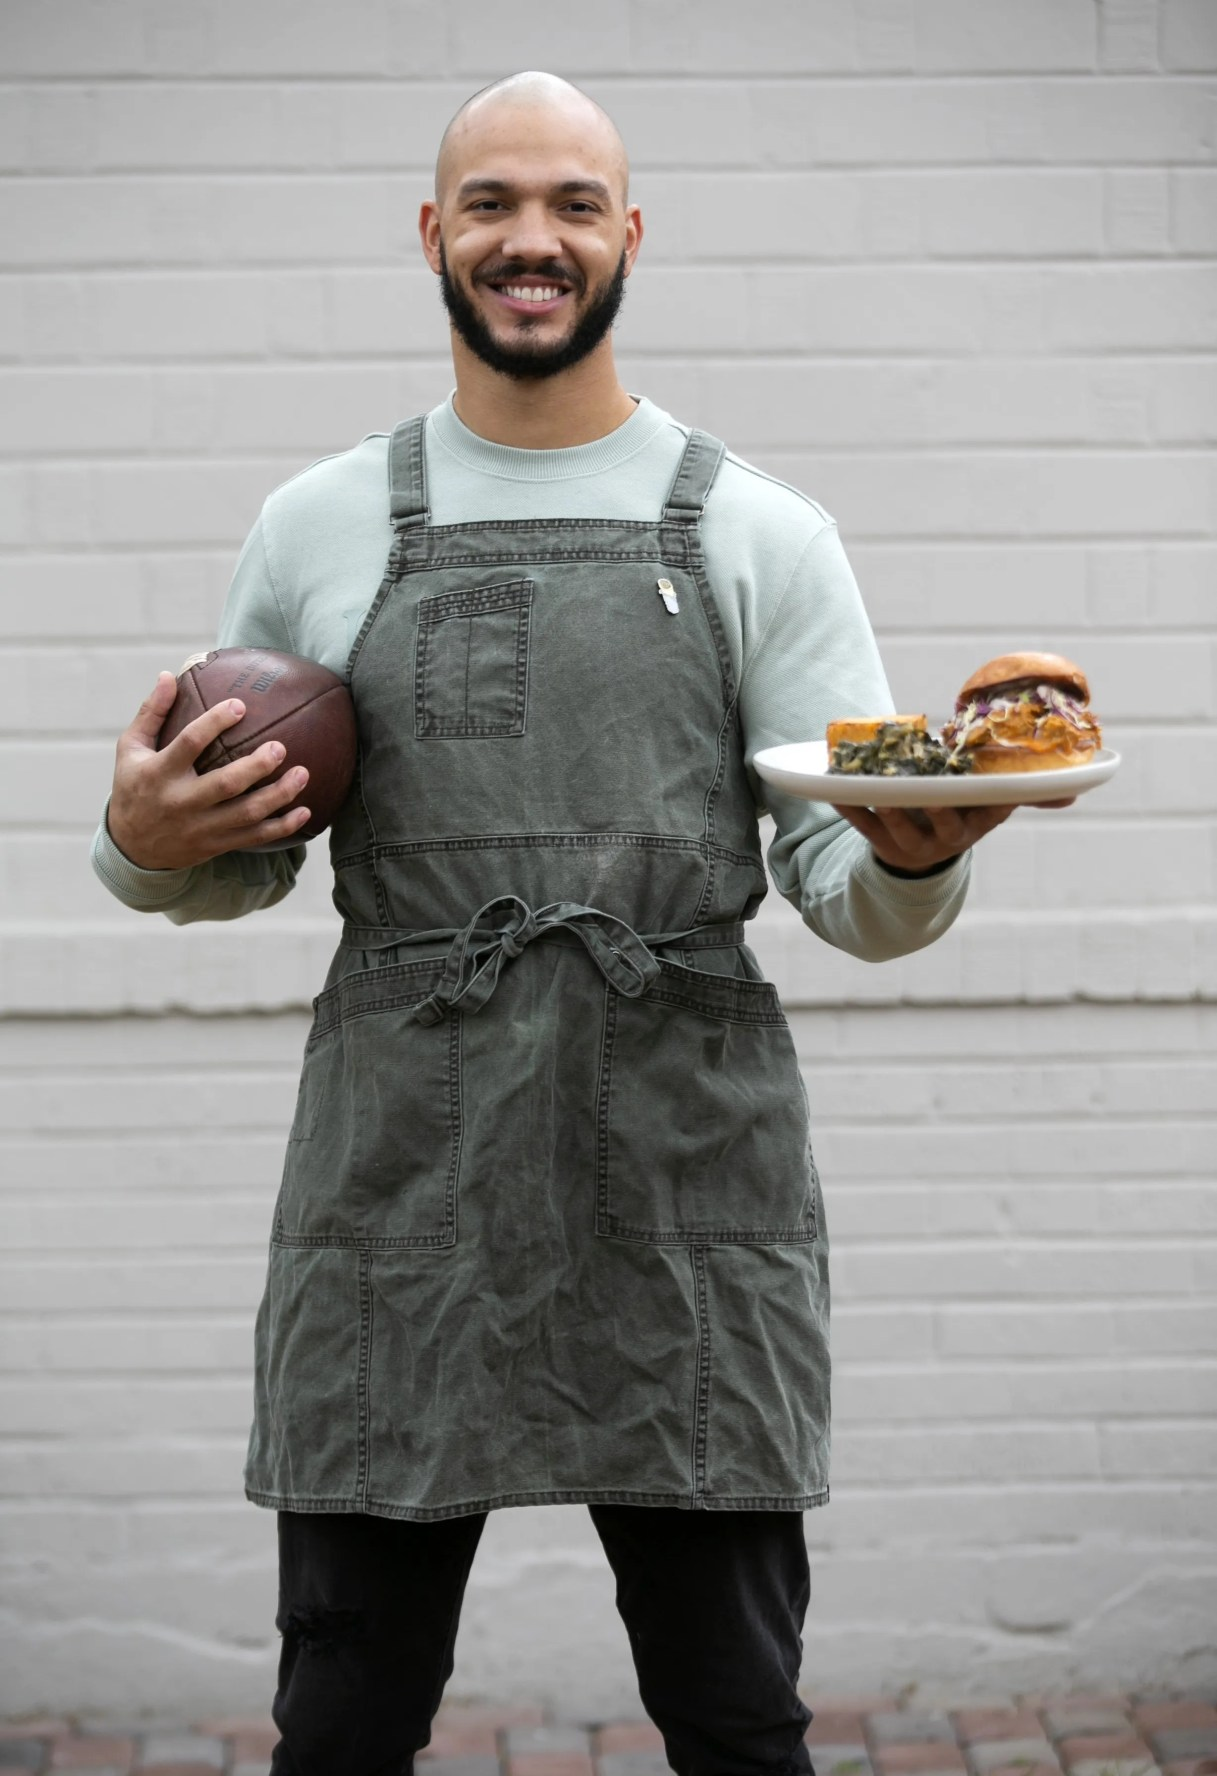 """Phoenix chef and former college football player Lawrence """"L.T."""" Smith holds his signature pulled pork sandwich topped with Carolina Gold sauce. Read his story and learn how to make his game-changing pulled pork sandwich."""